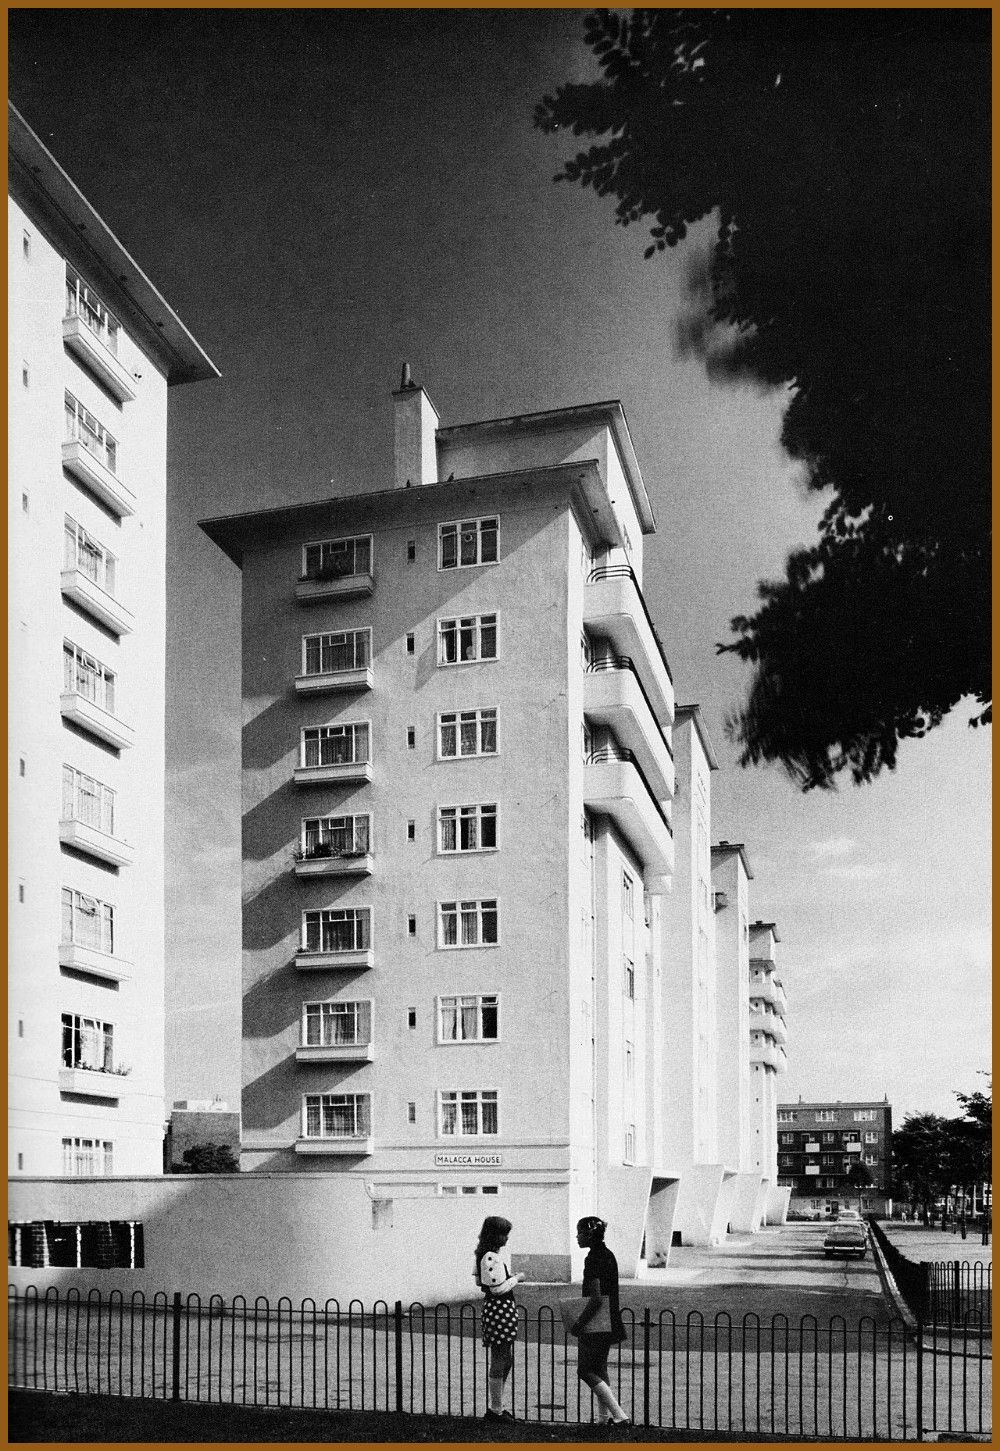 London Ocean Estate Tower Hamlets 194857 by London County Council Architects Department Image from Home Sweet Home Housing Designed By Modern London Ocean Estate Tower Ha...